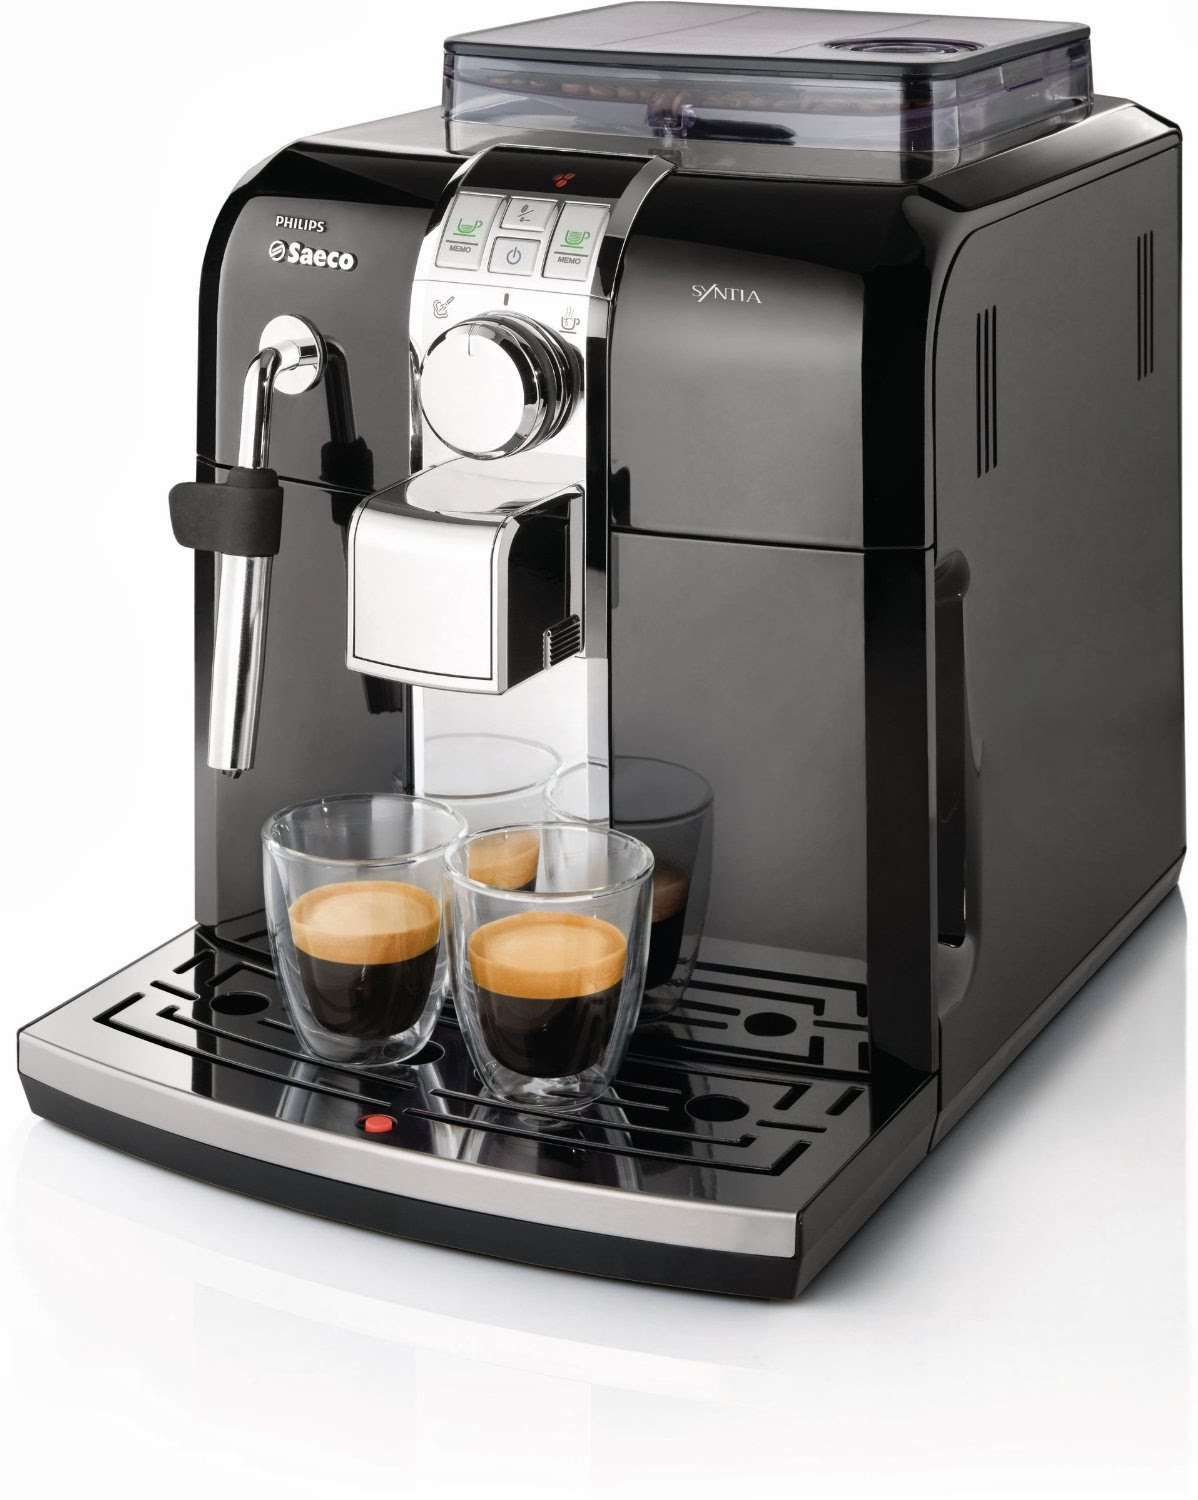 Best Coffee Maker For Office : The Best Office Coffee Machine For Your Business - Latte Art Guide